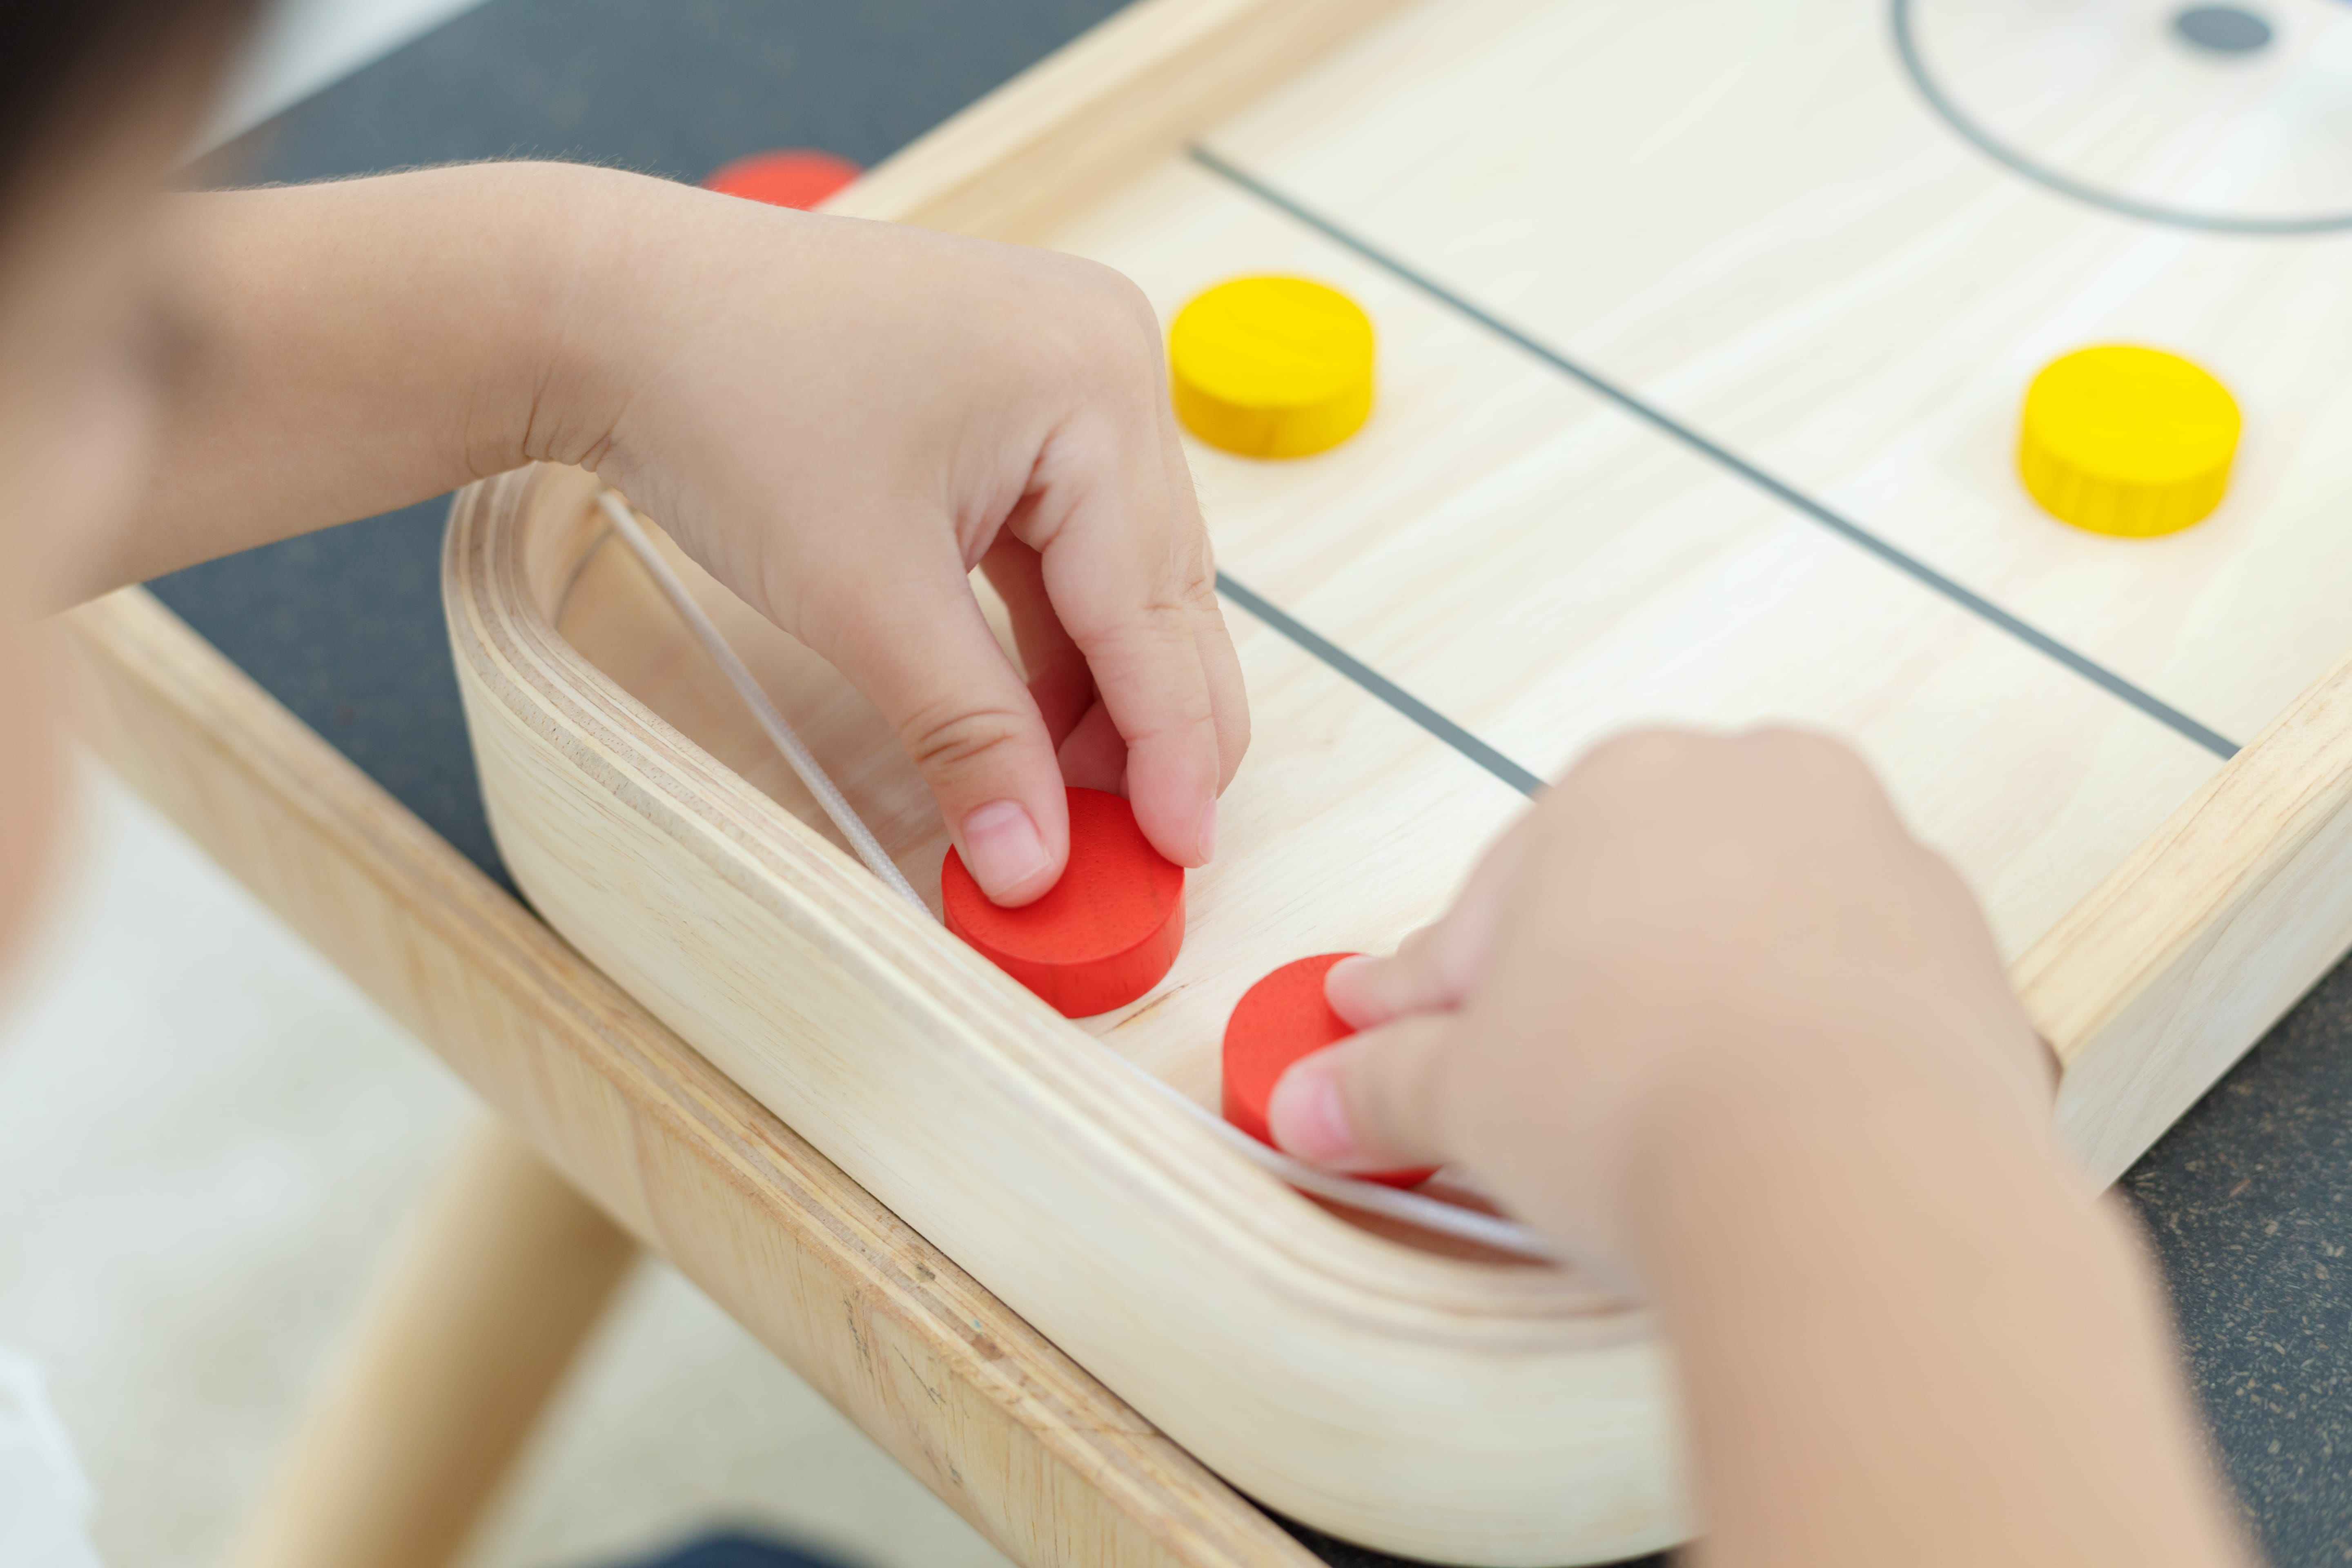 4626_PlanToys_2-IN-1_SHUFFLEBOARD-GAME_Game_and_Puzzles_Fine_Motor_Coordination_Social_Language_and_Communications_Mathematical_3yrs_Wooden_toys_Education_toys_Safety_Toys_Non-toxic_3.jpg